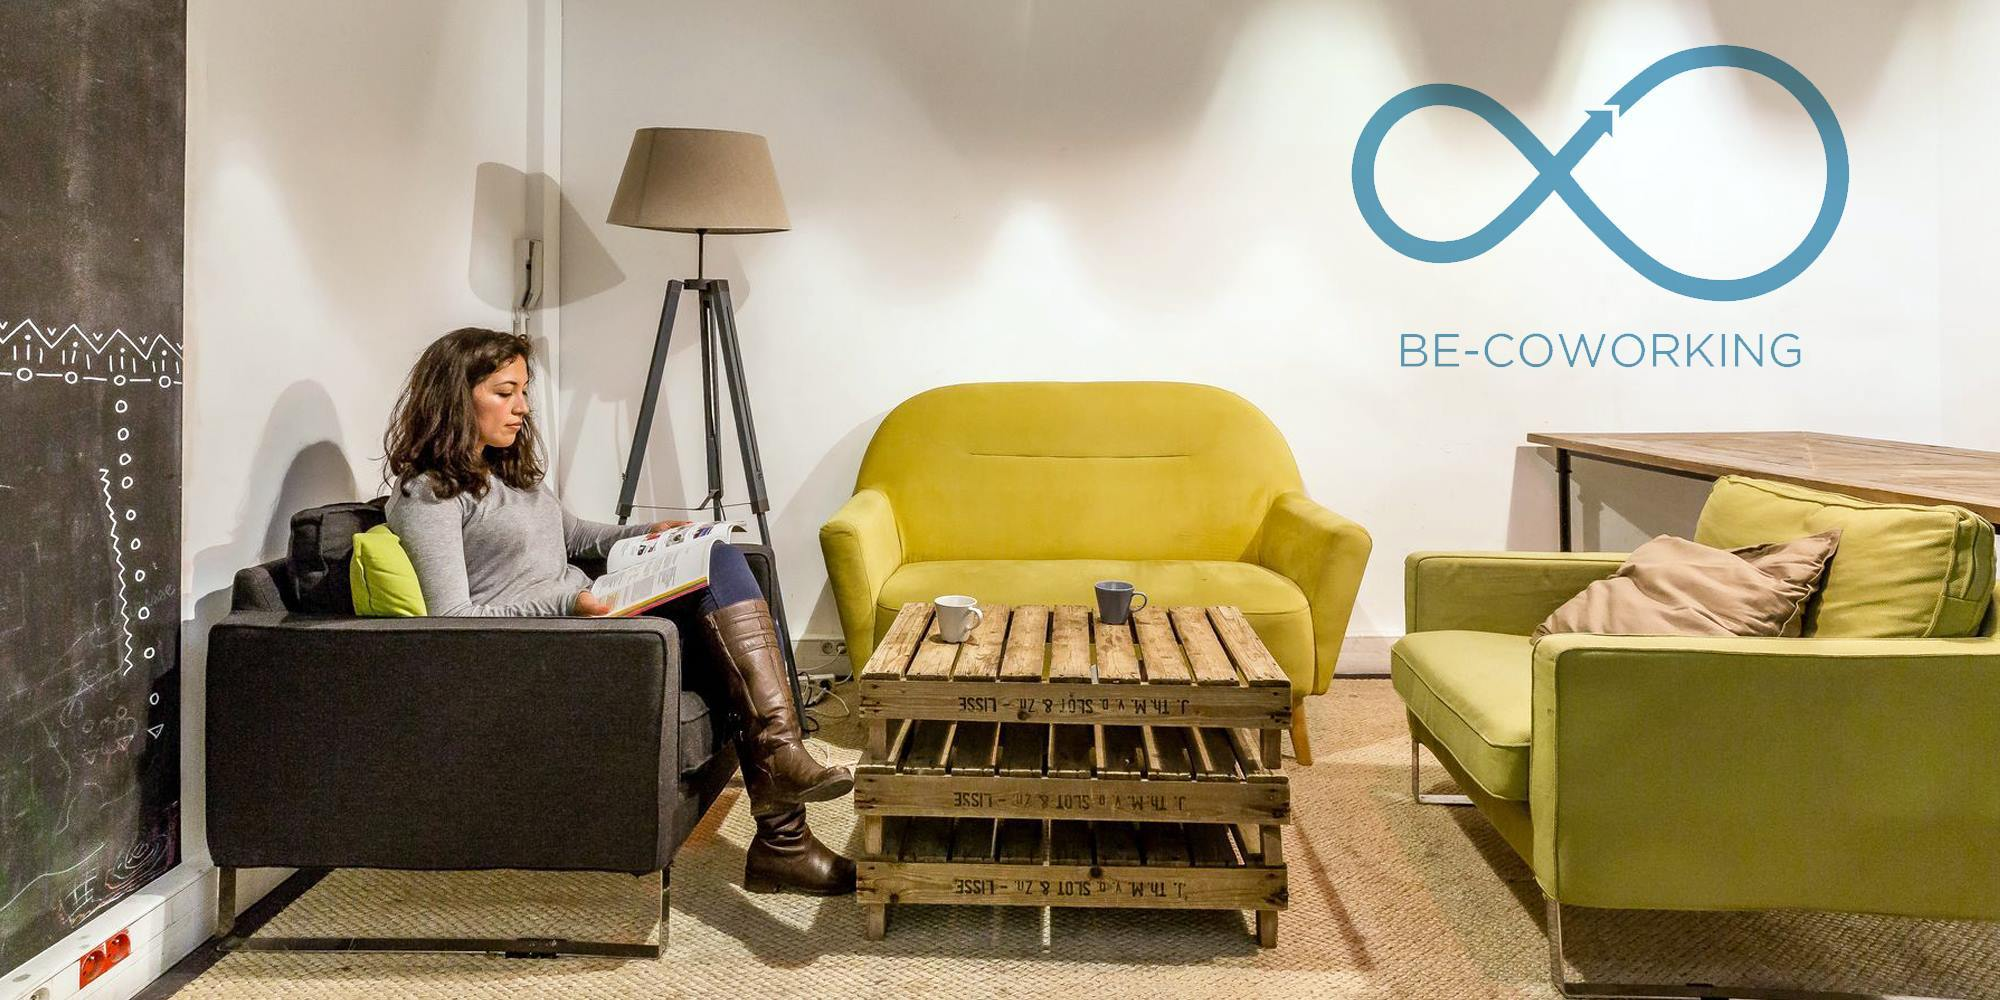 Be-coworking